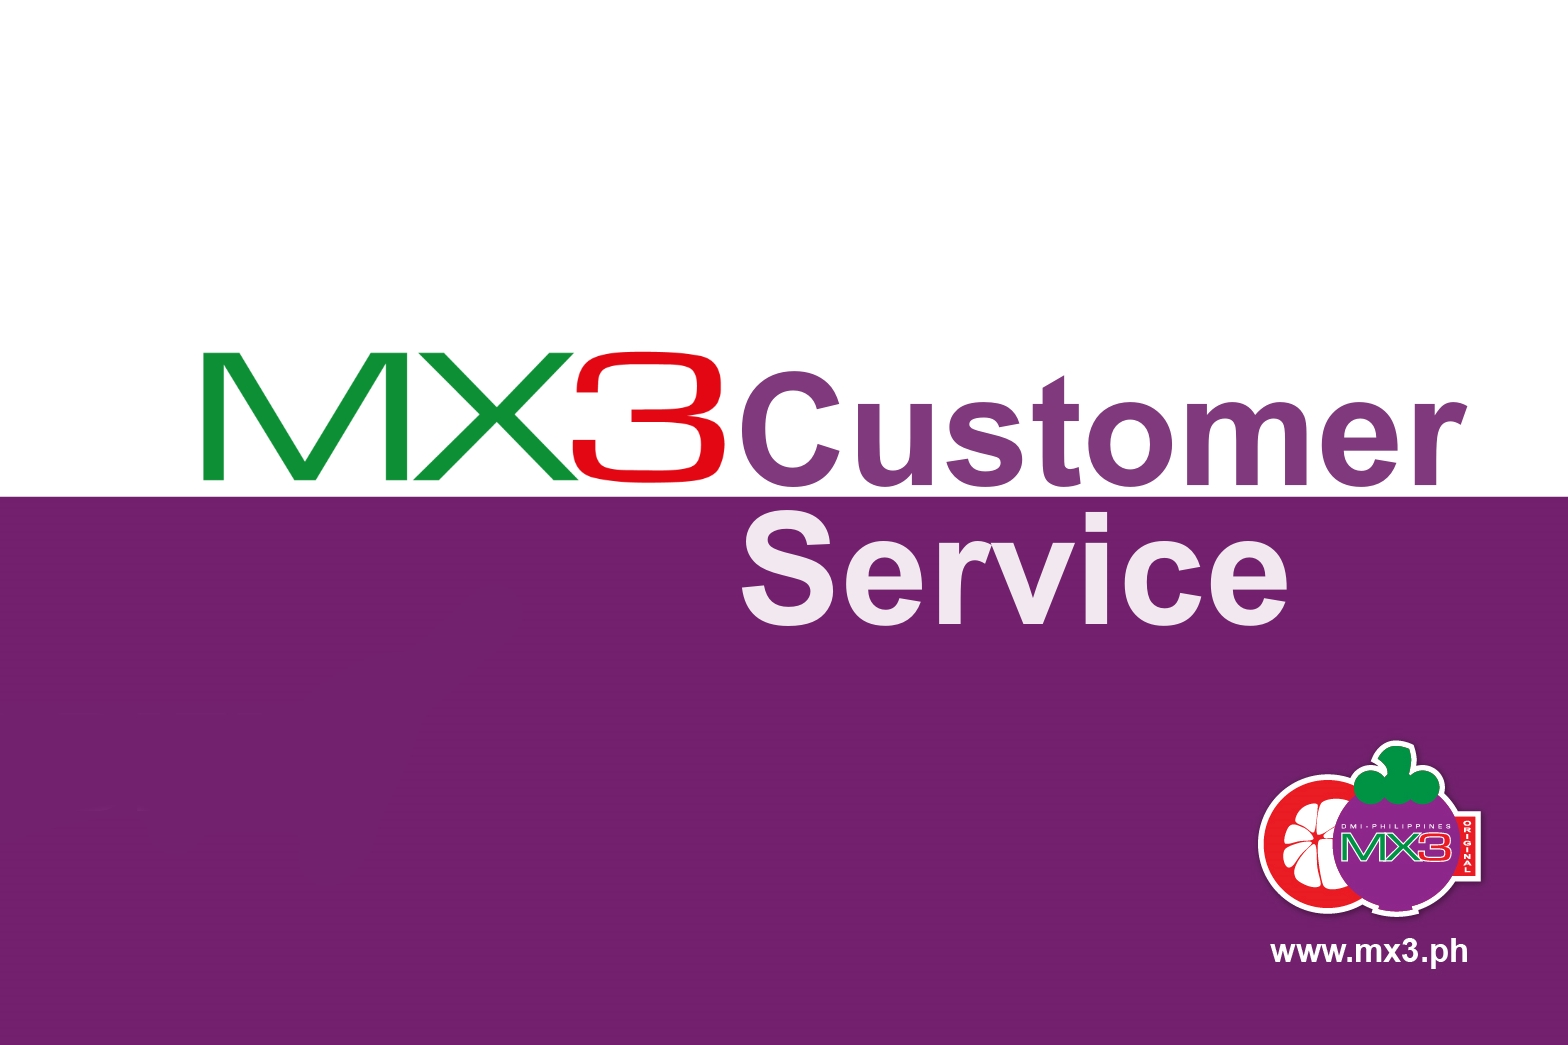 MX3 Customer Service Contacts